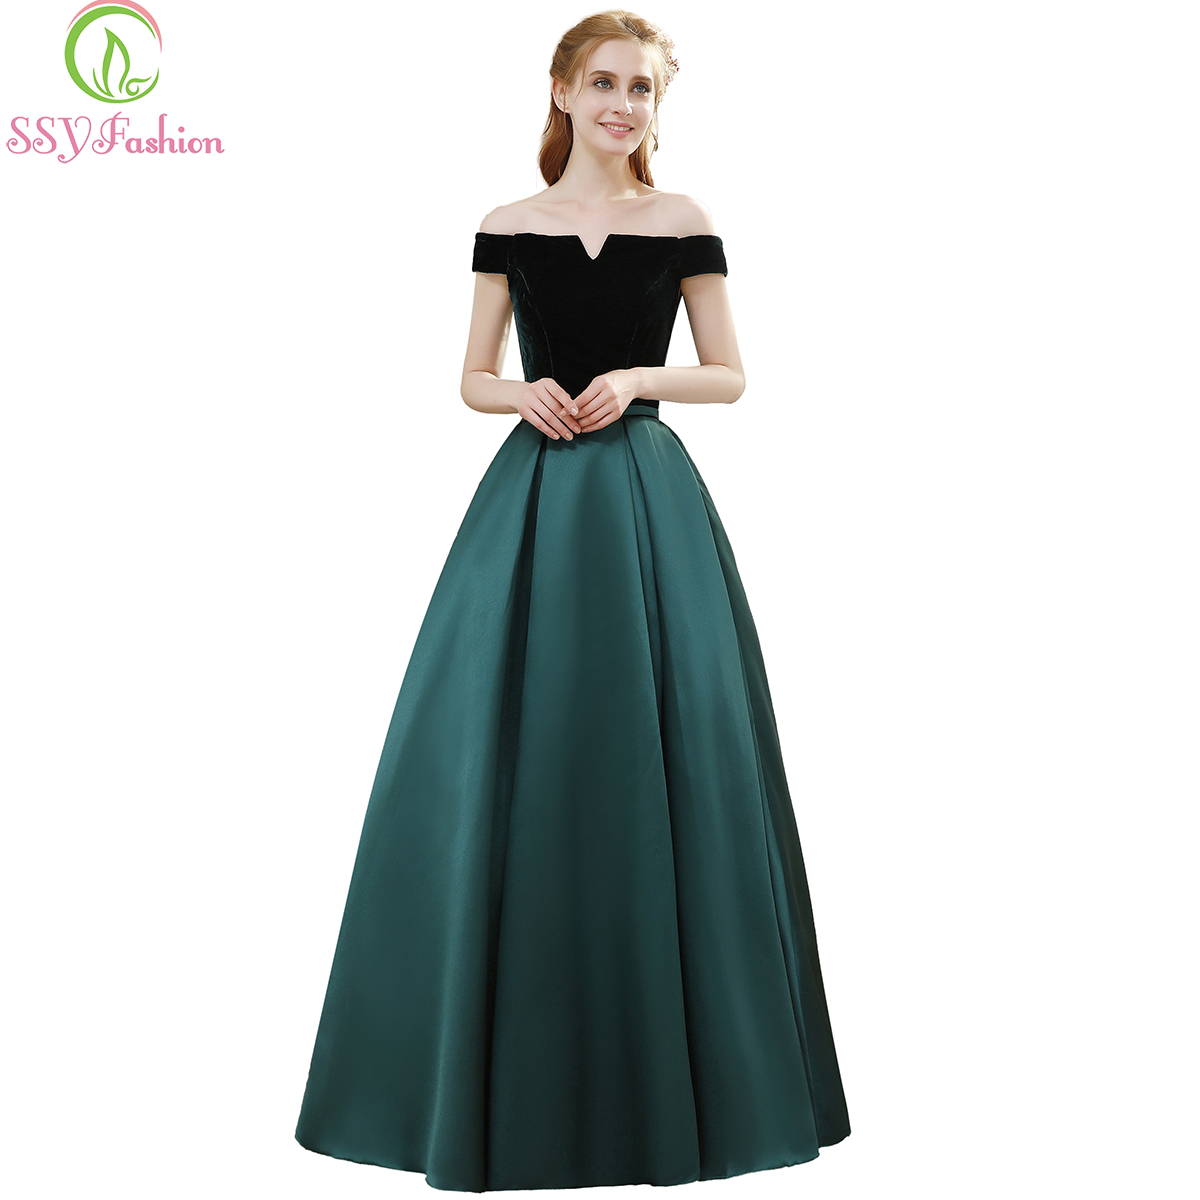 SSYFashion Banquet Simple Elegant Evening Dress Bride Boat Neck Velvet with Satin Vintage Long Prom Formal Gown Robe De Soiree